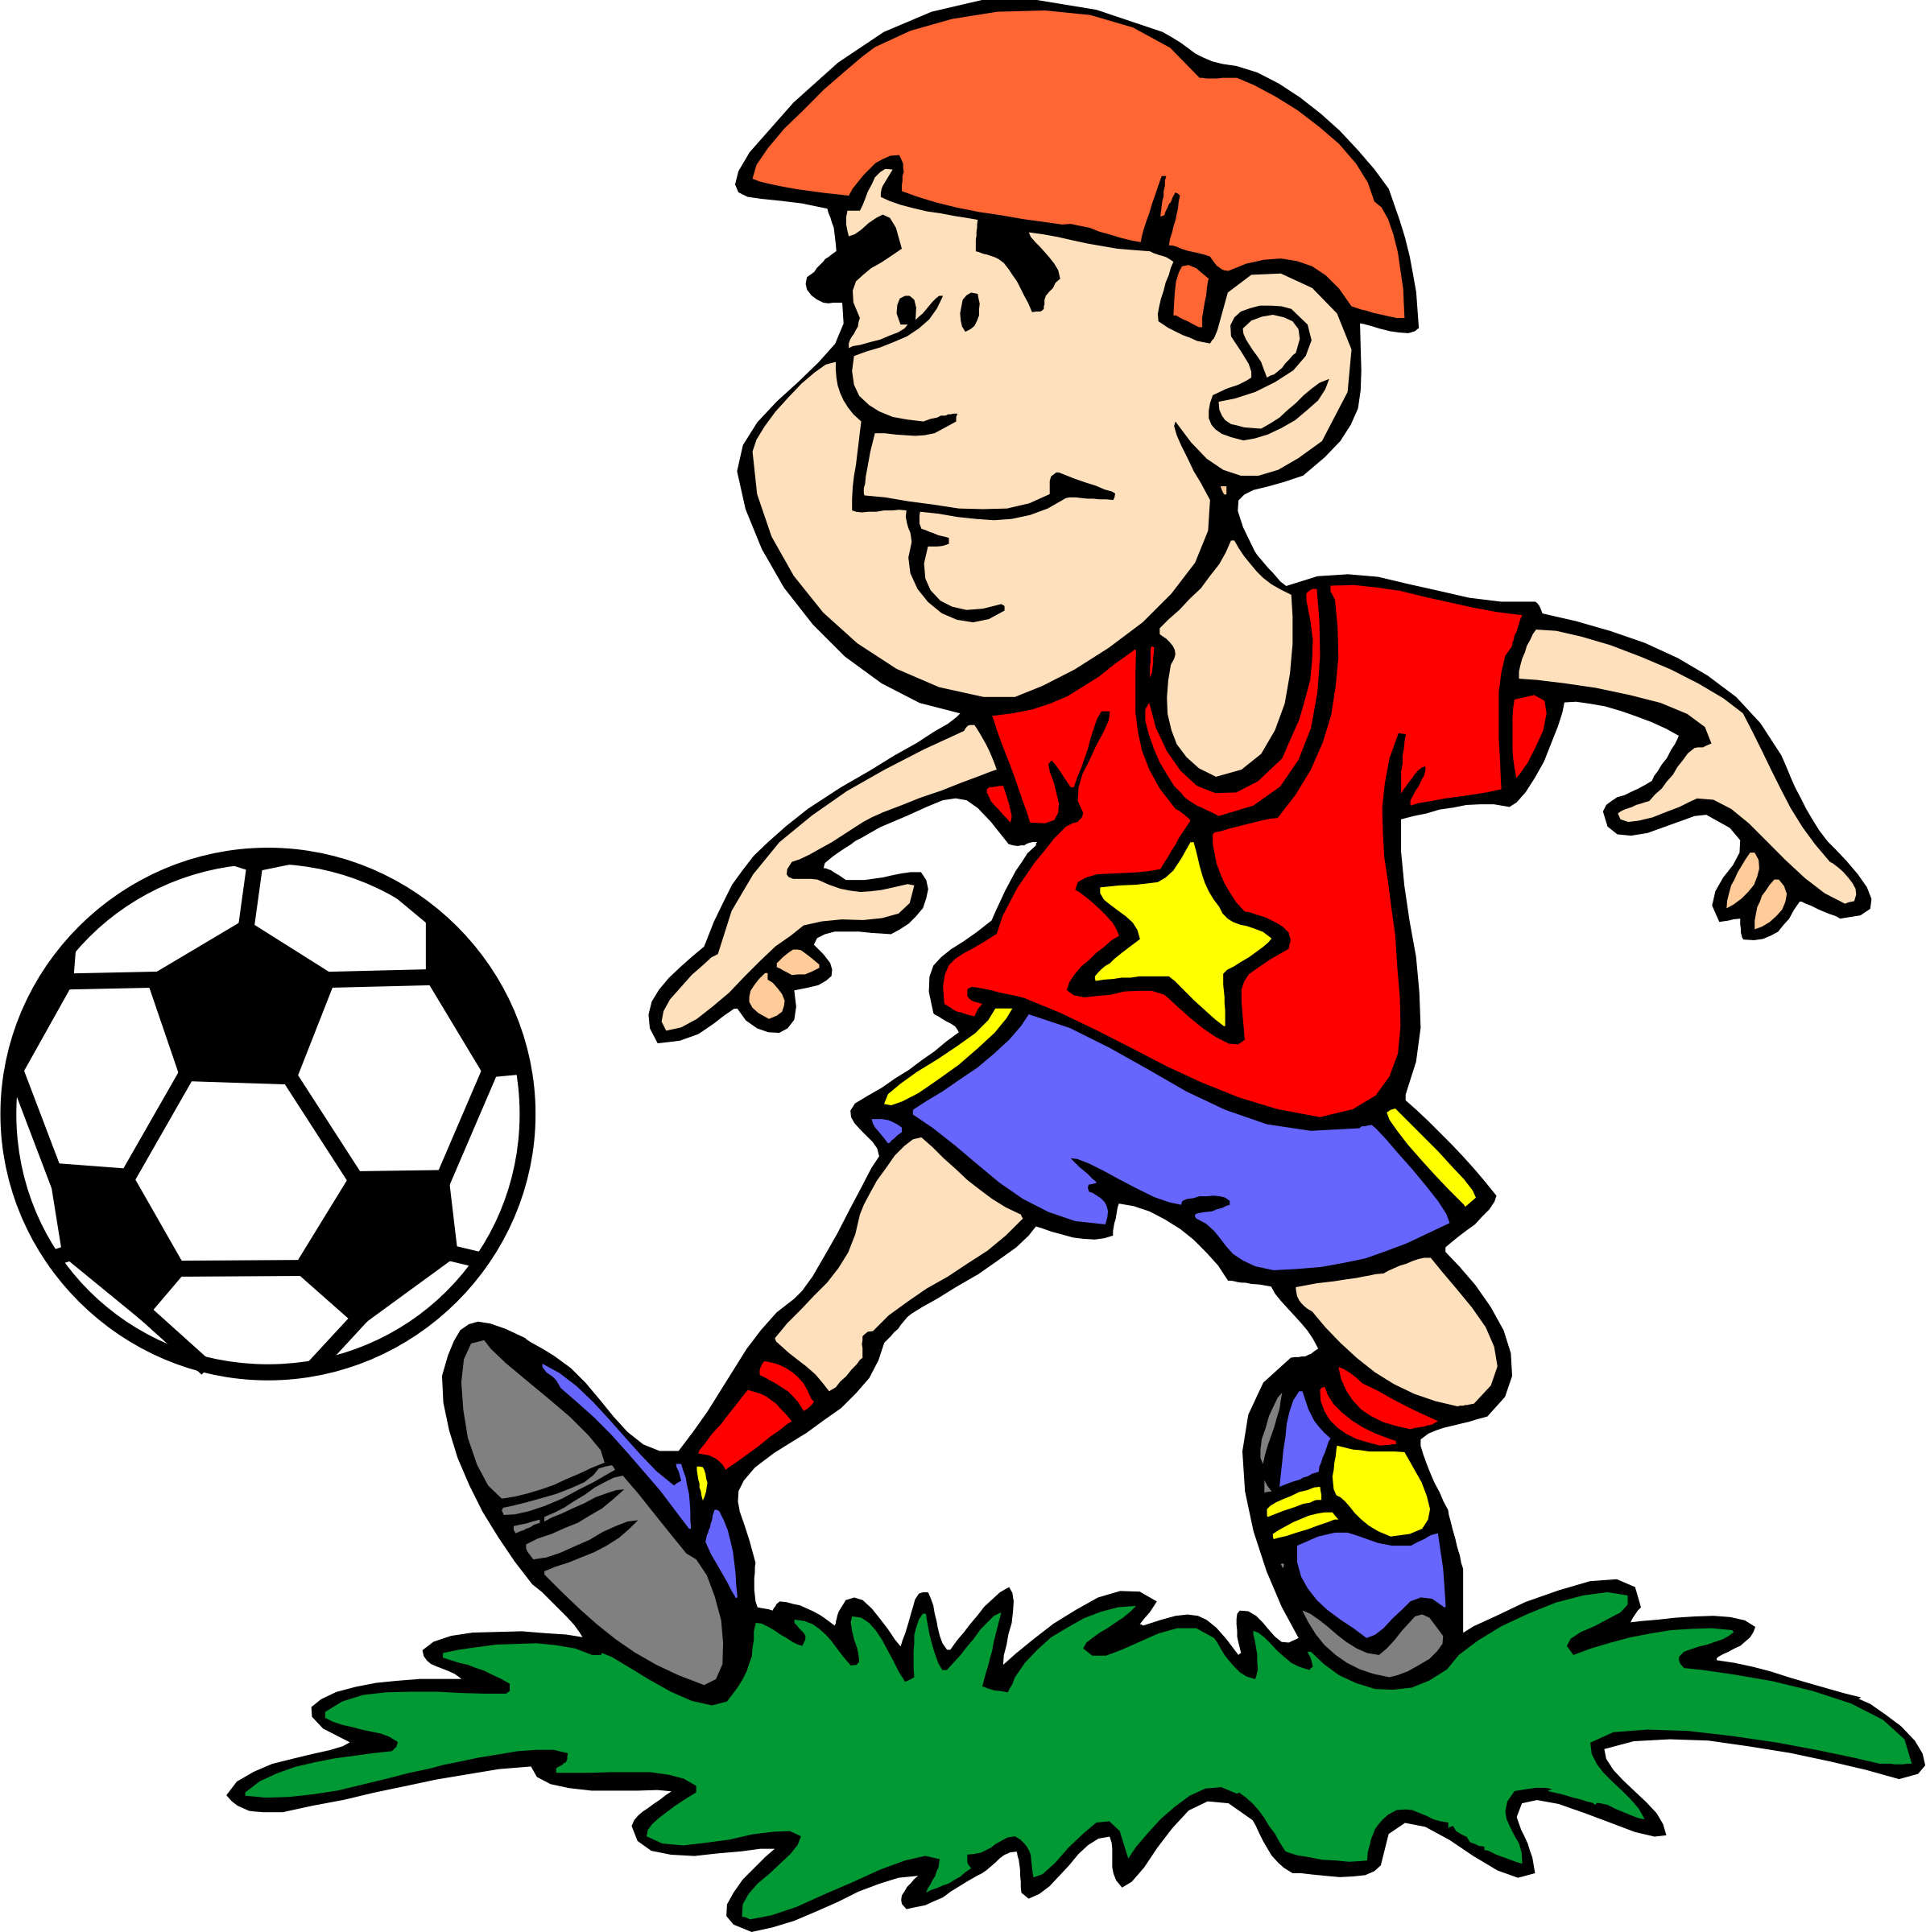 Kicking a ball clipart clipart images gallery for free download.